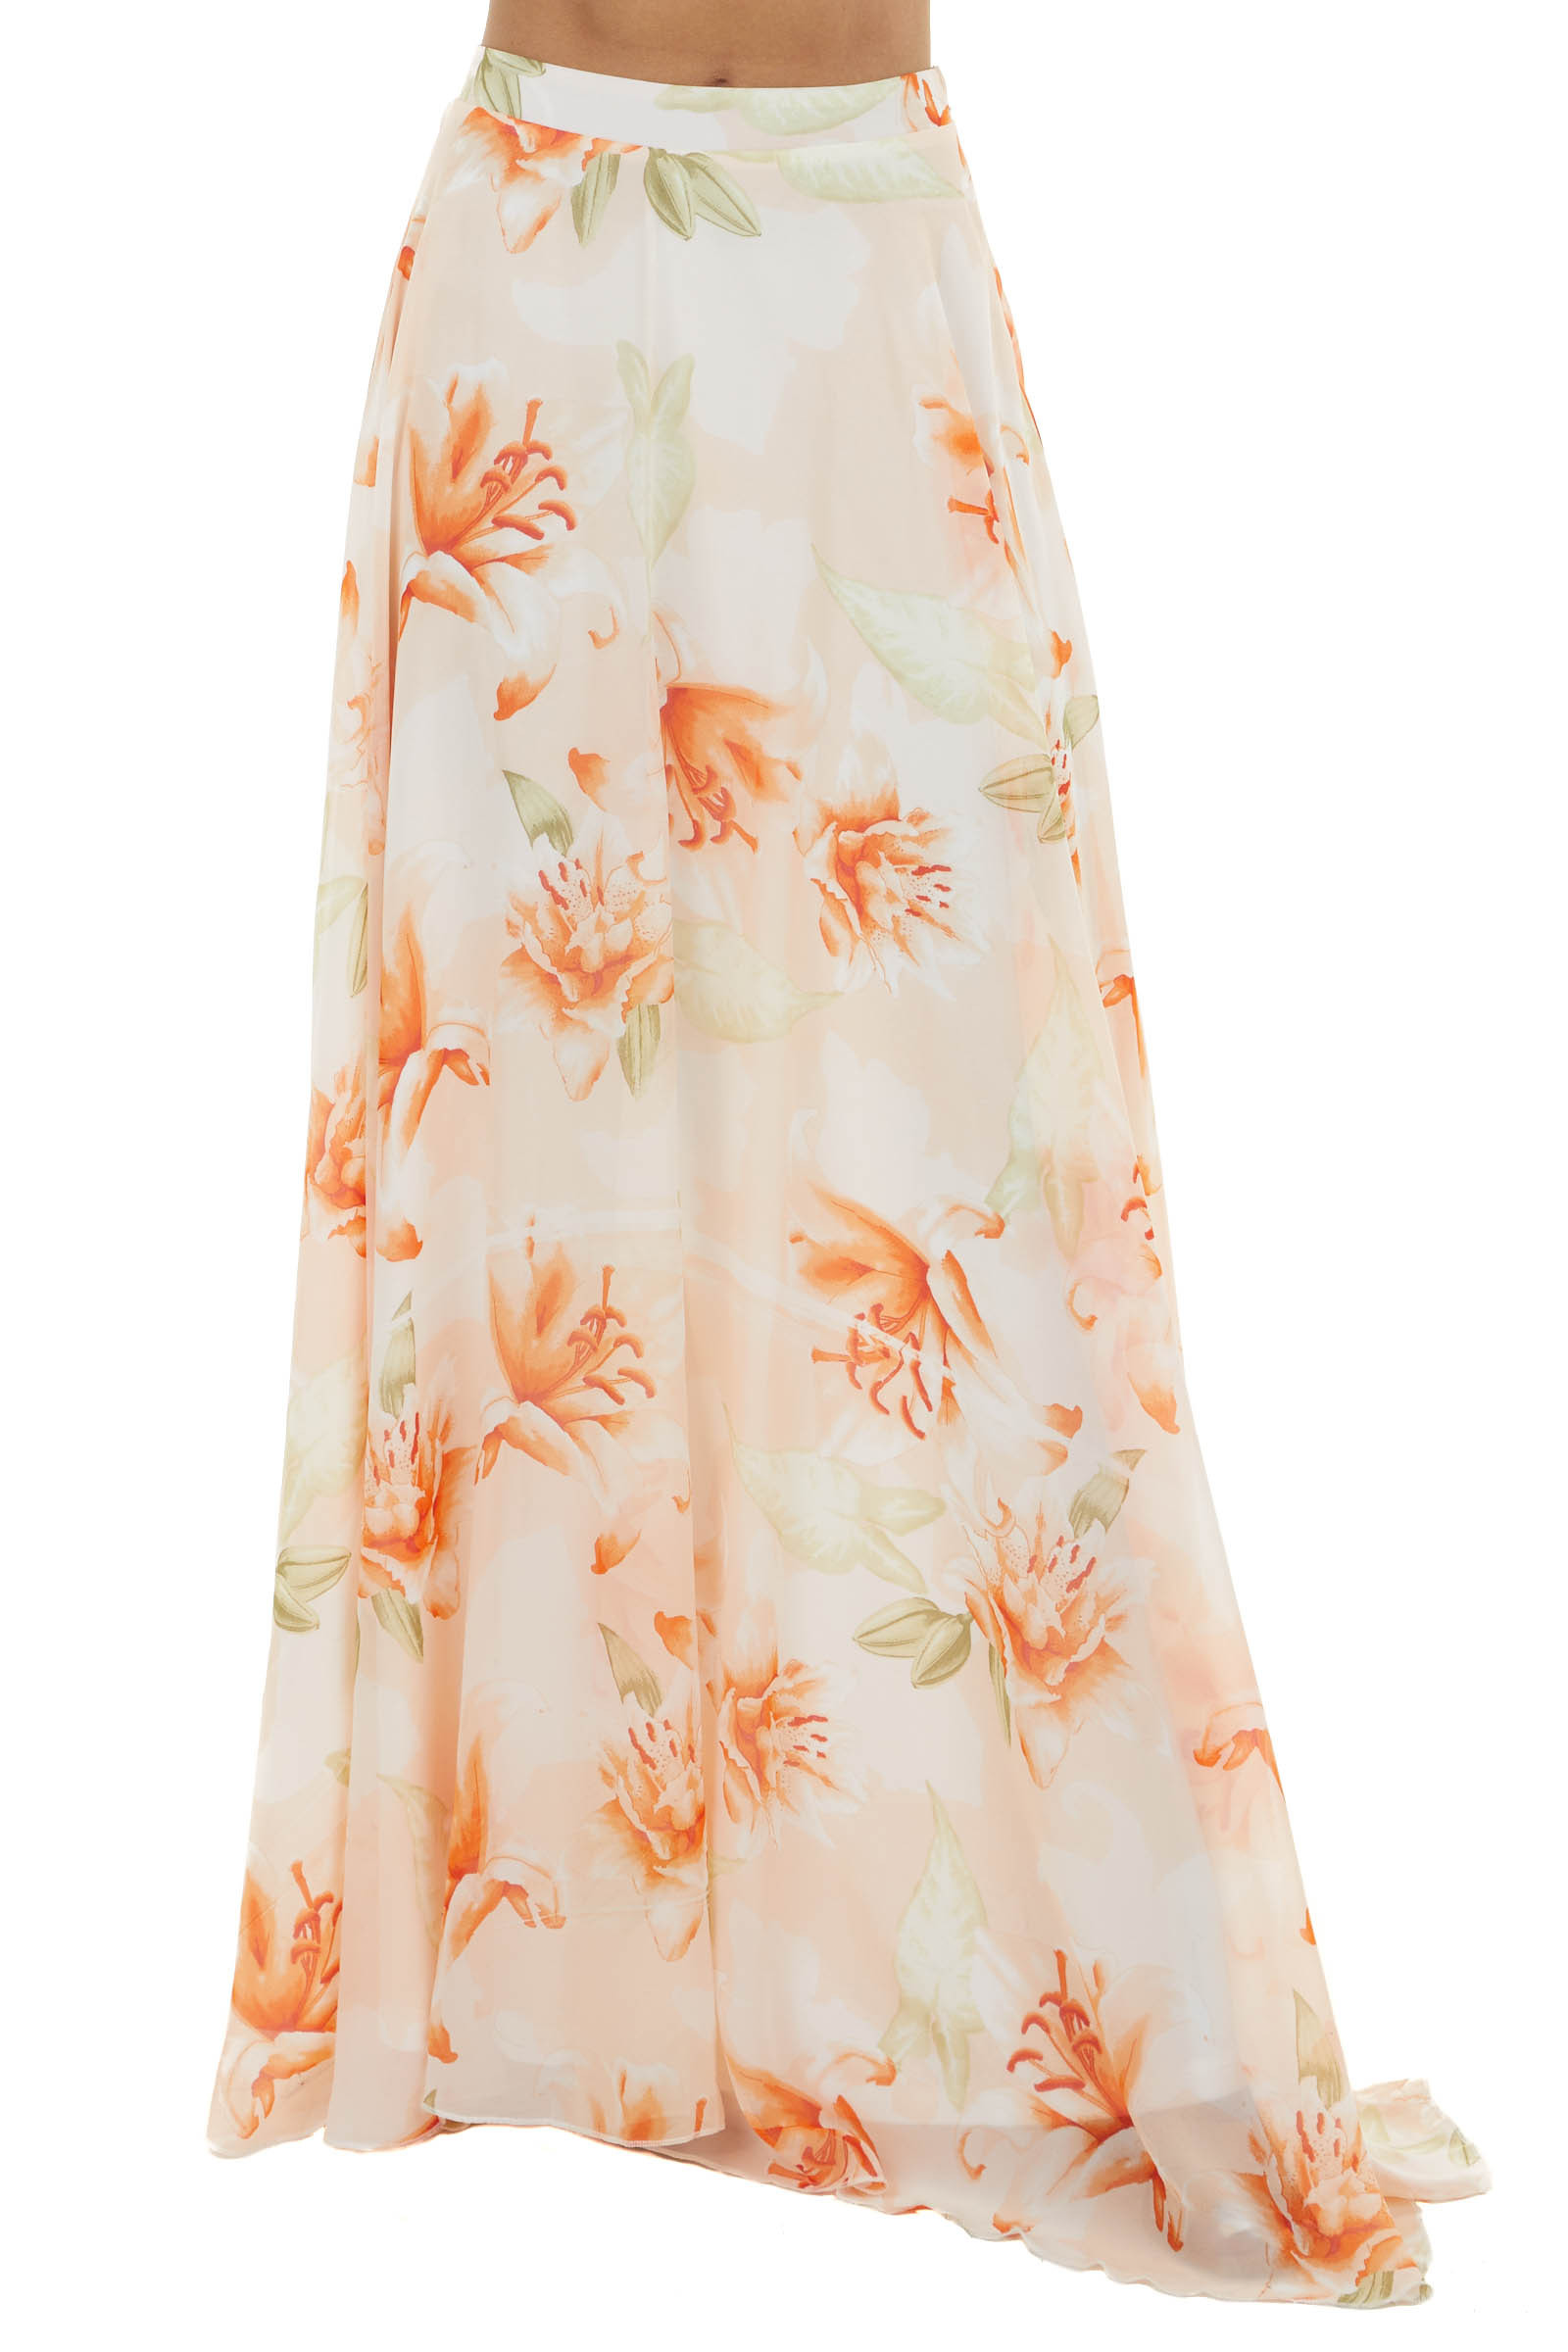 Peach Floral Print Flowy Woven Maxi Skirt with Side Zipper